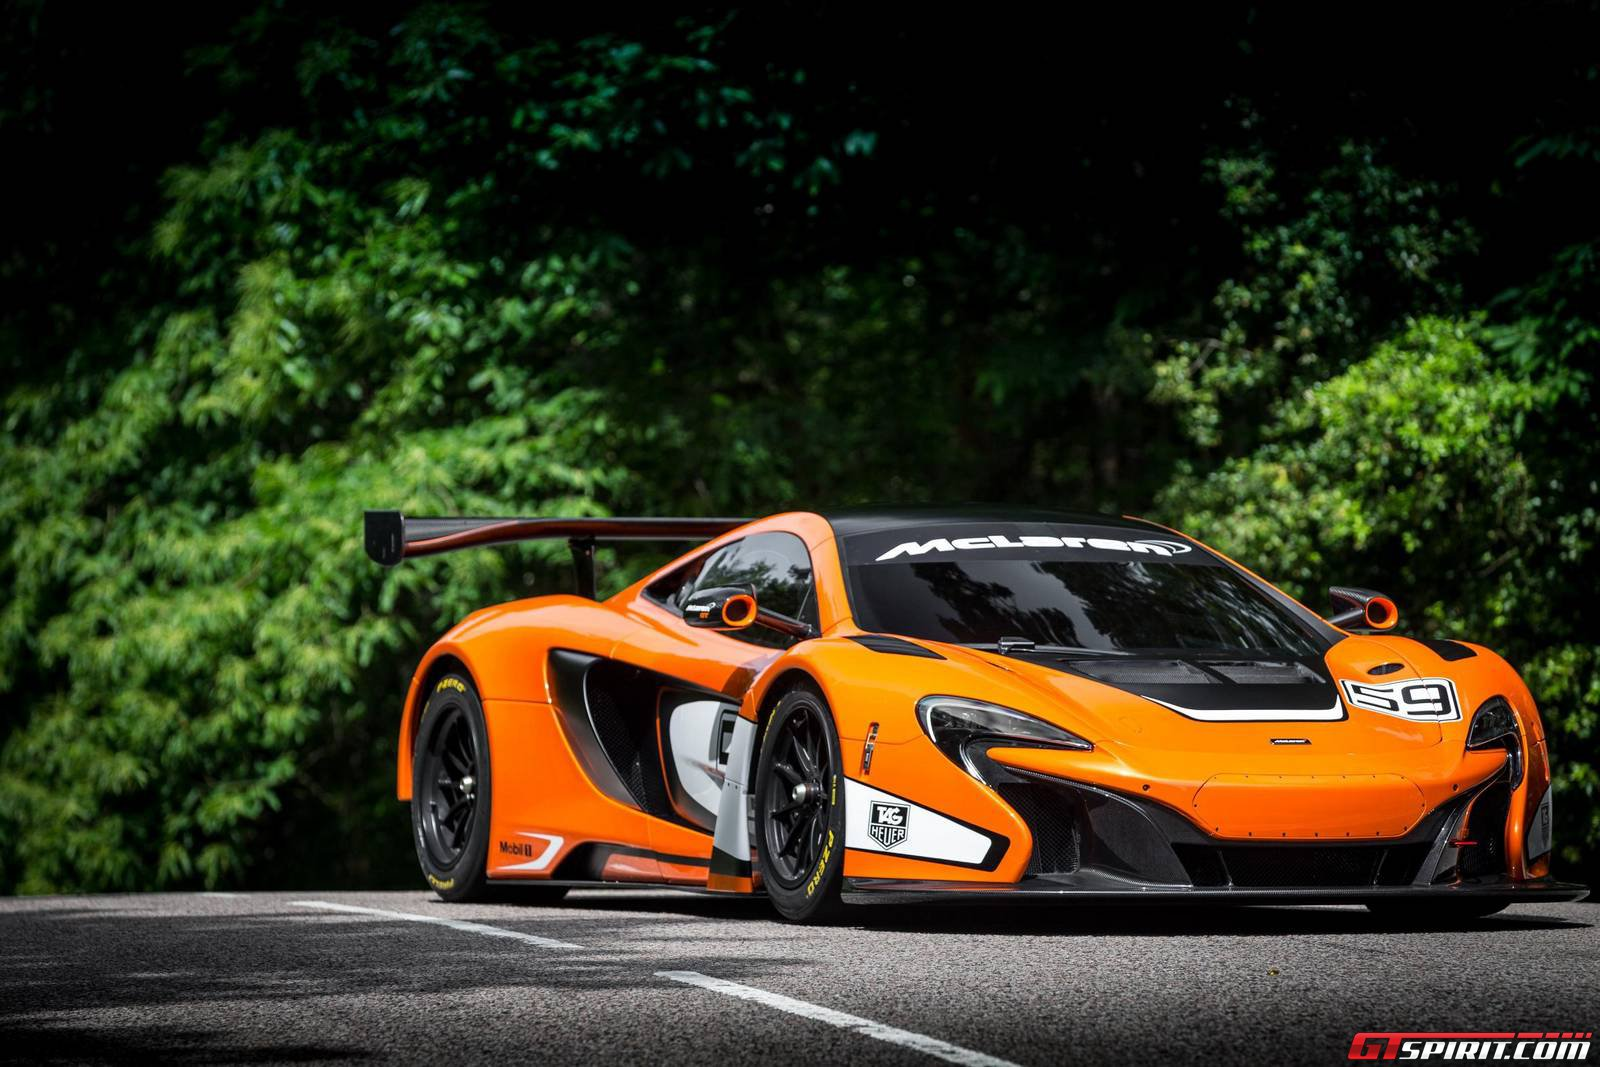 https://storage.googleapis.com/gtspirit/uploads/2014/06/mclaren-650s-gt3-11.jpg